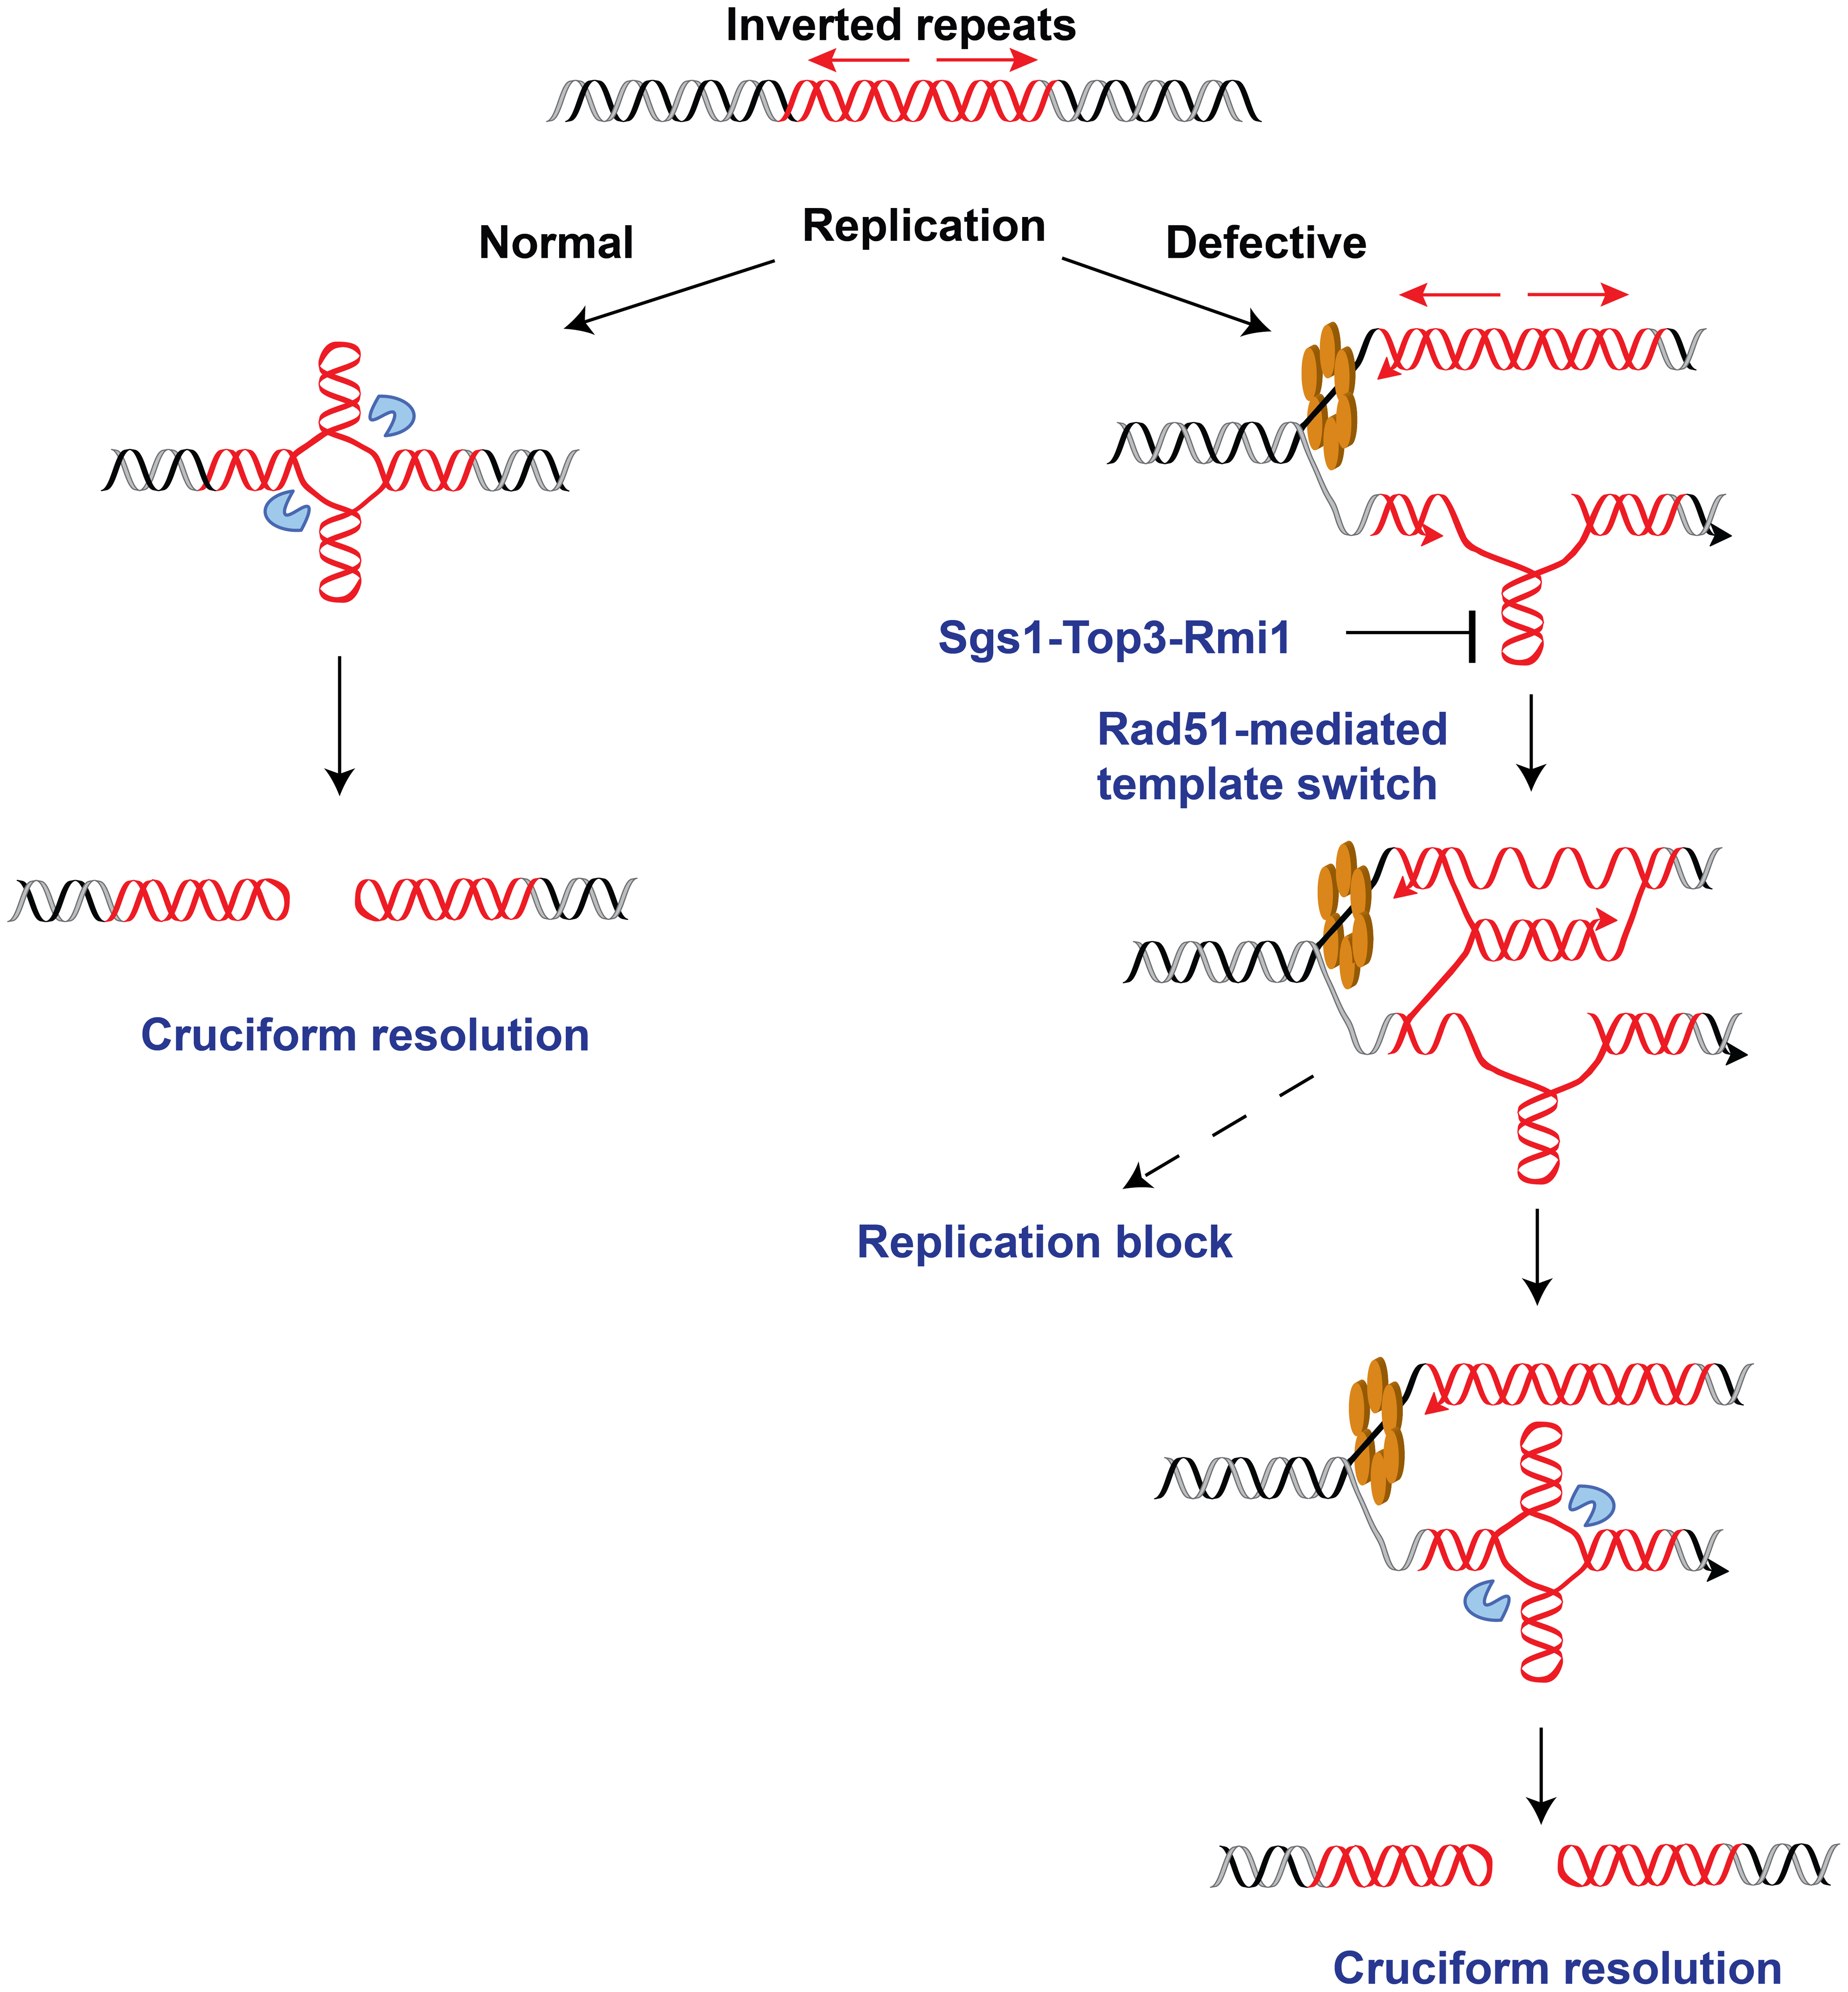 Model for <i>Alu</i>-IRs-mediated fragility under conditions of replication proficiency and deficiency.